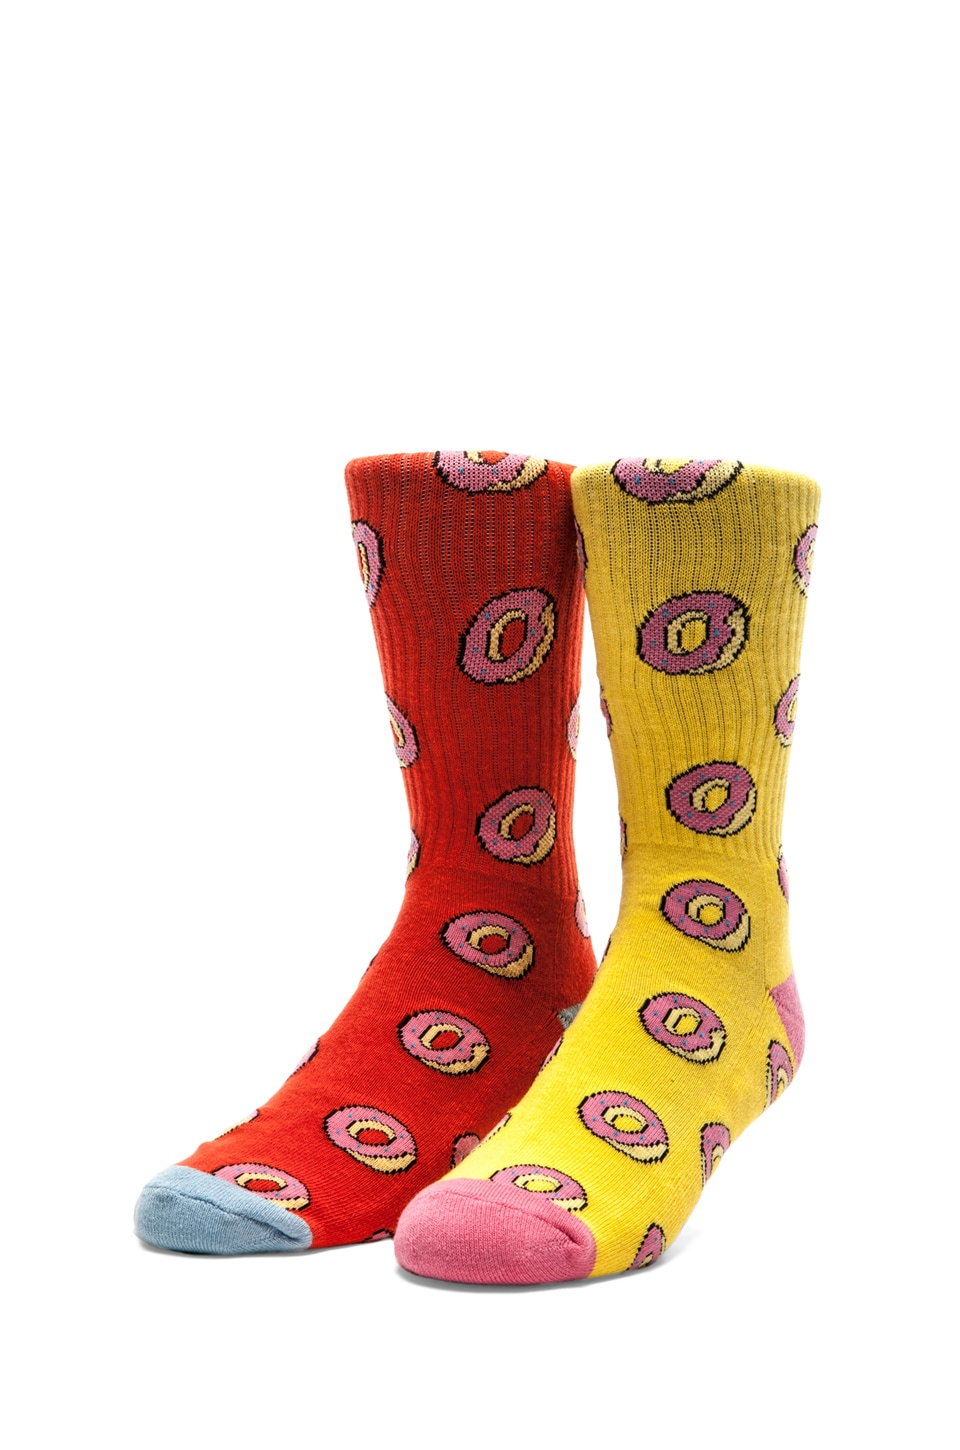 Odd Future All Over Donut Socks in Red, All Over Donut Socks in Yellow